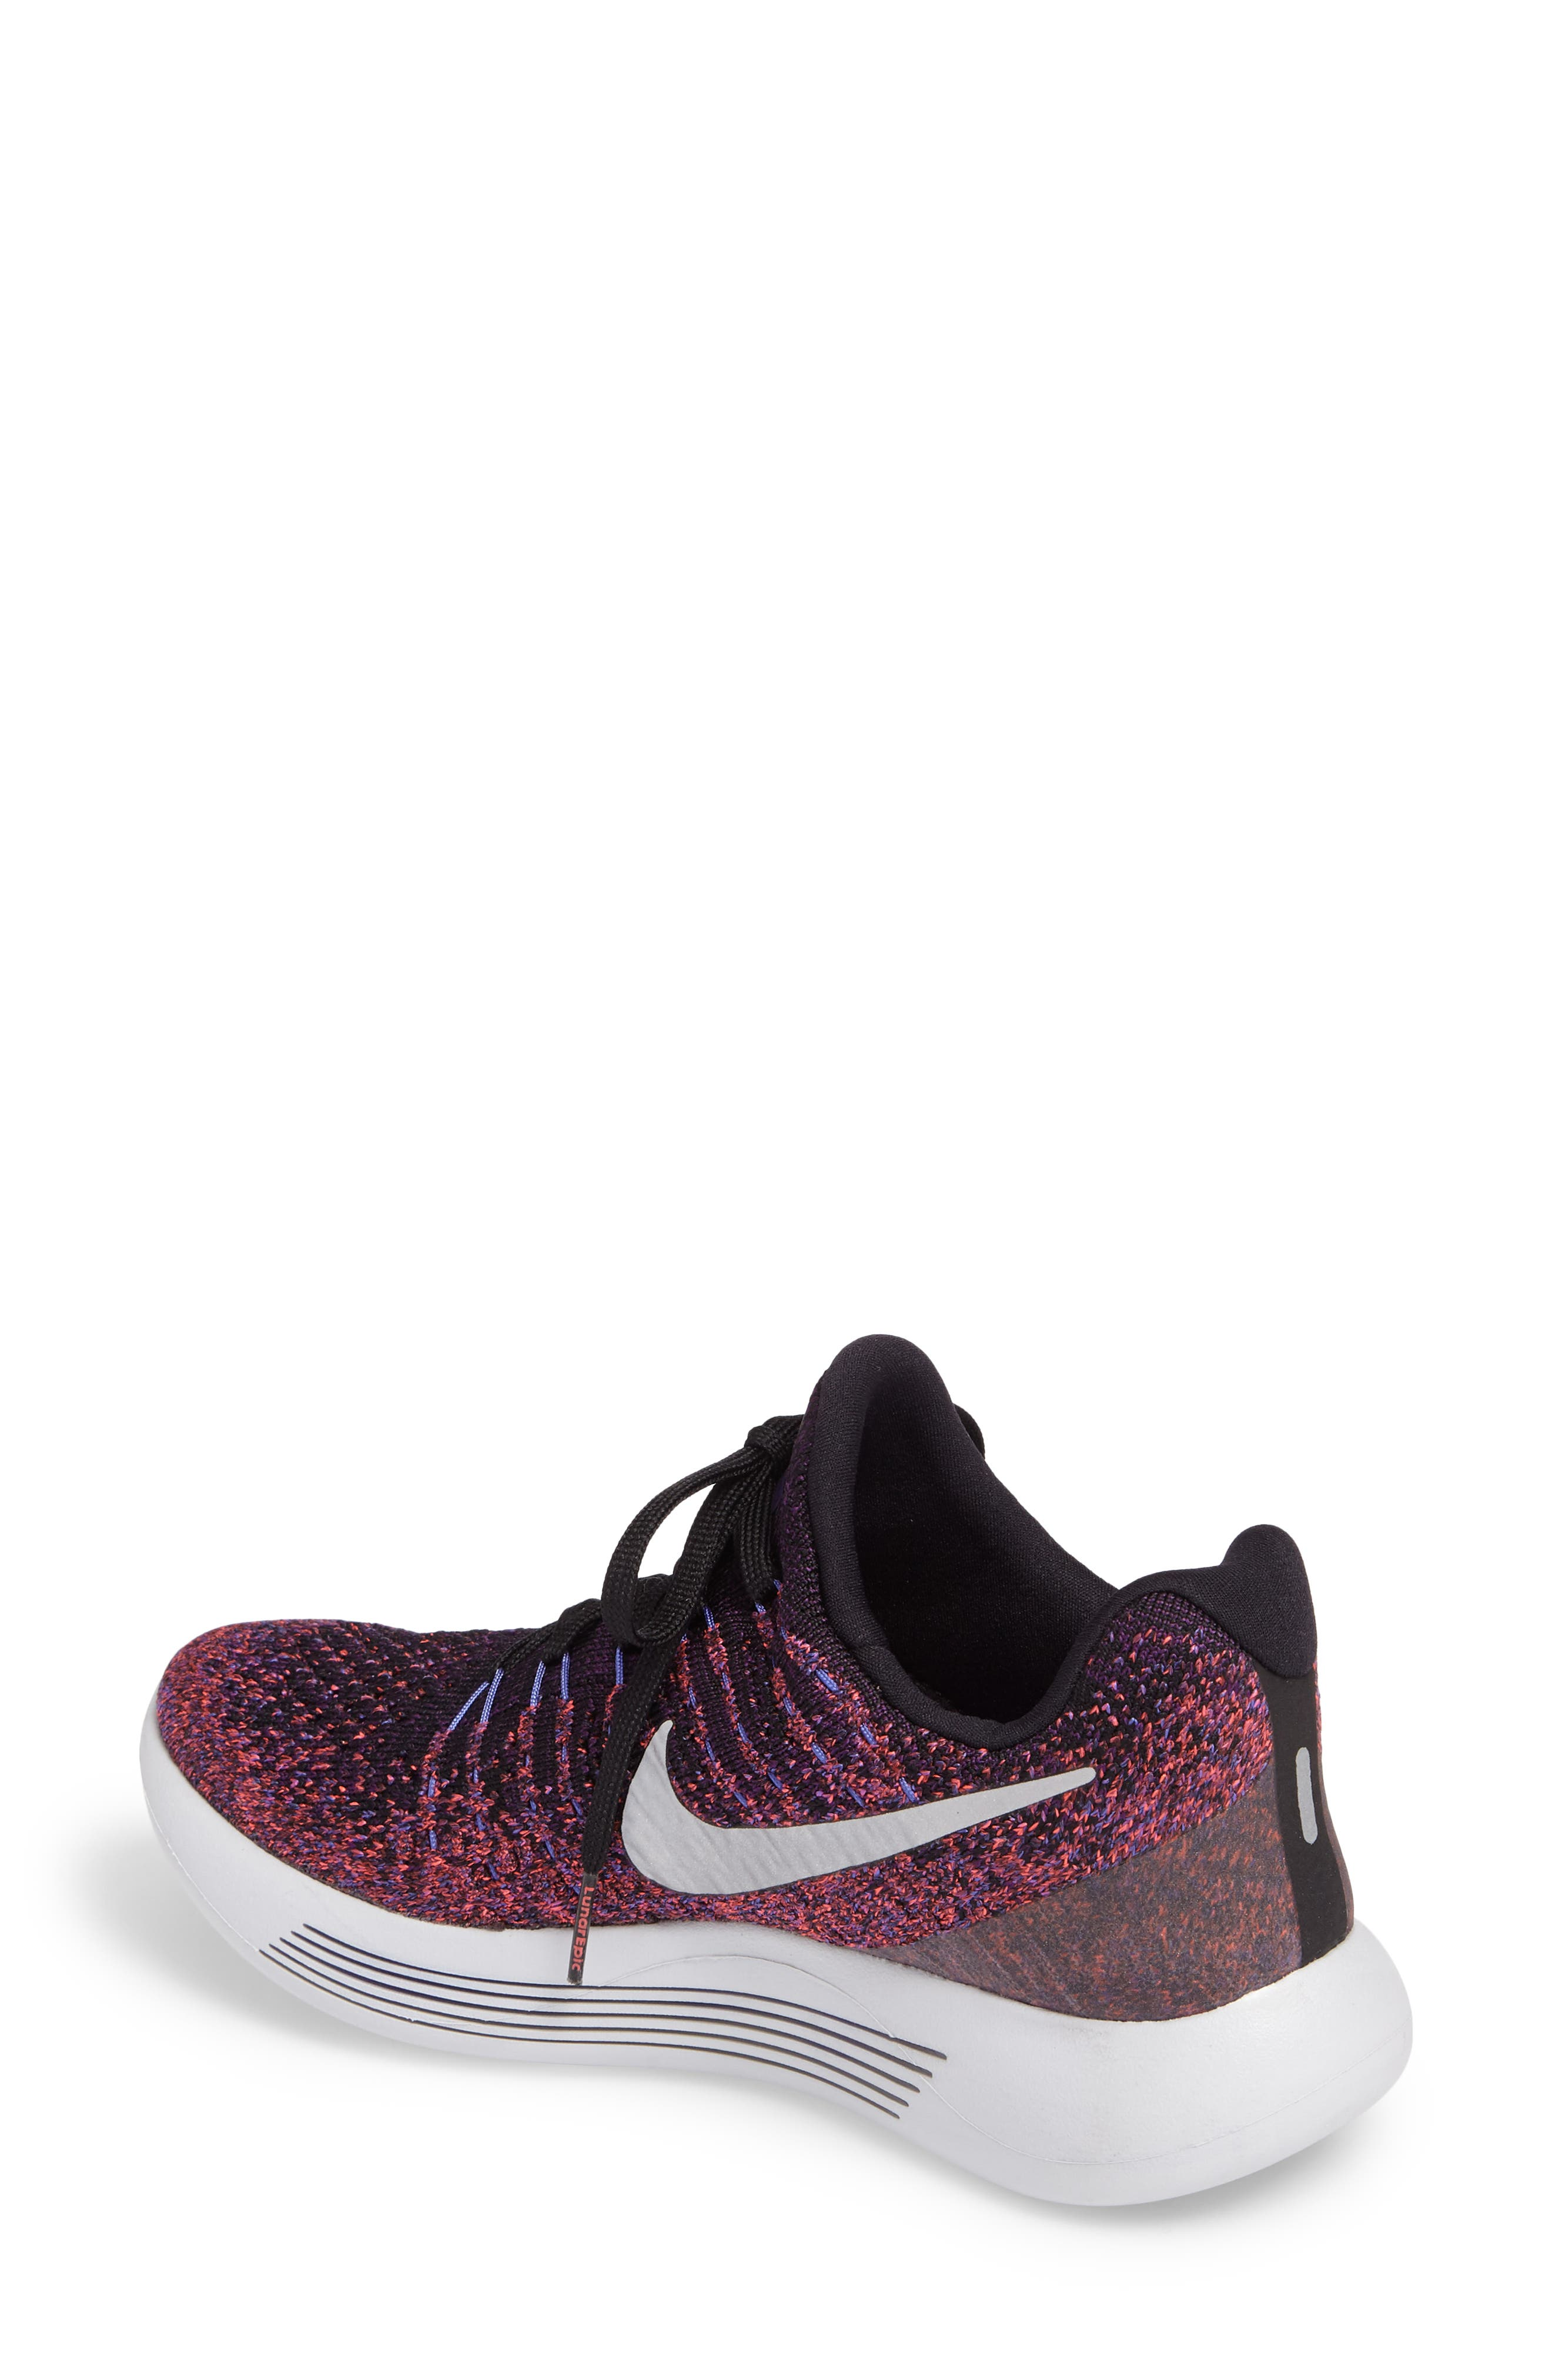 ,                             LunarEpic Low Flyknit 2 Running Shoe,                             Alternate thumbnail 18, color,                             015